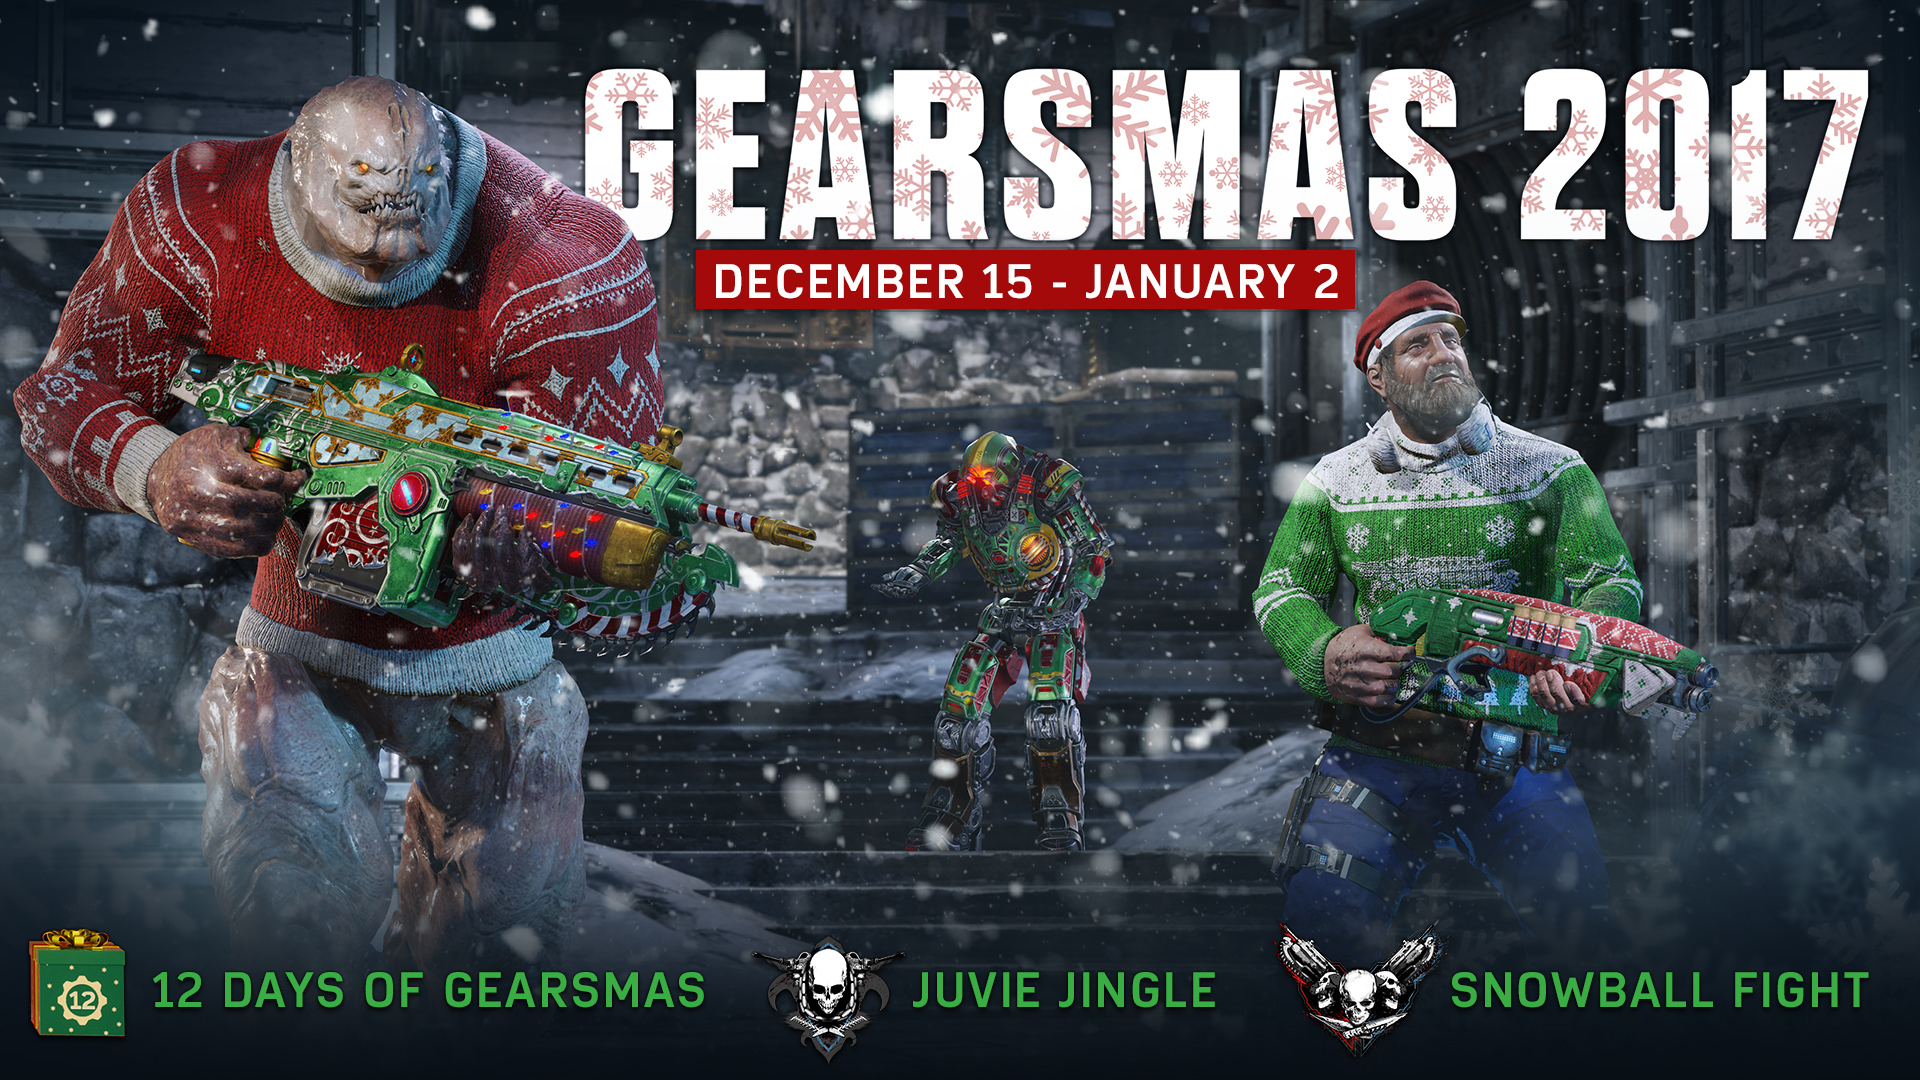 Gearsmas 2017 event comes to Gears of War 4 this Friday